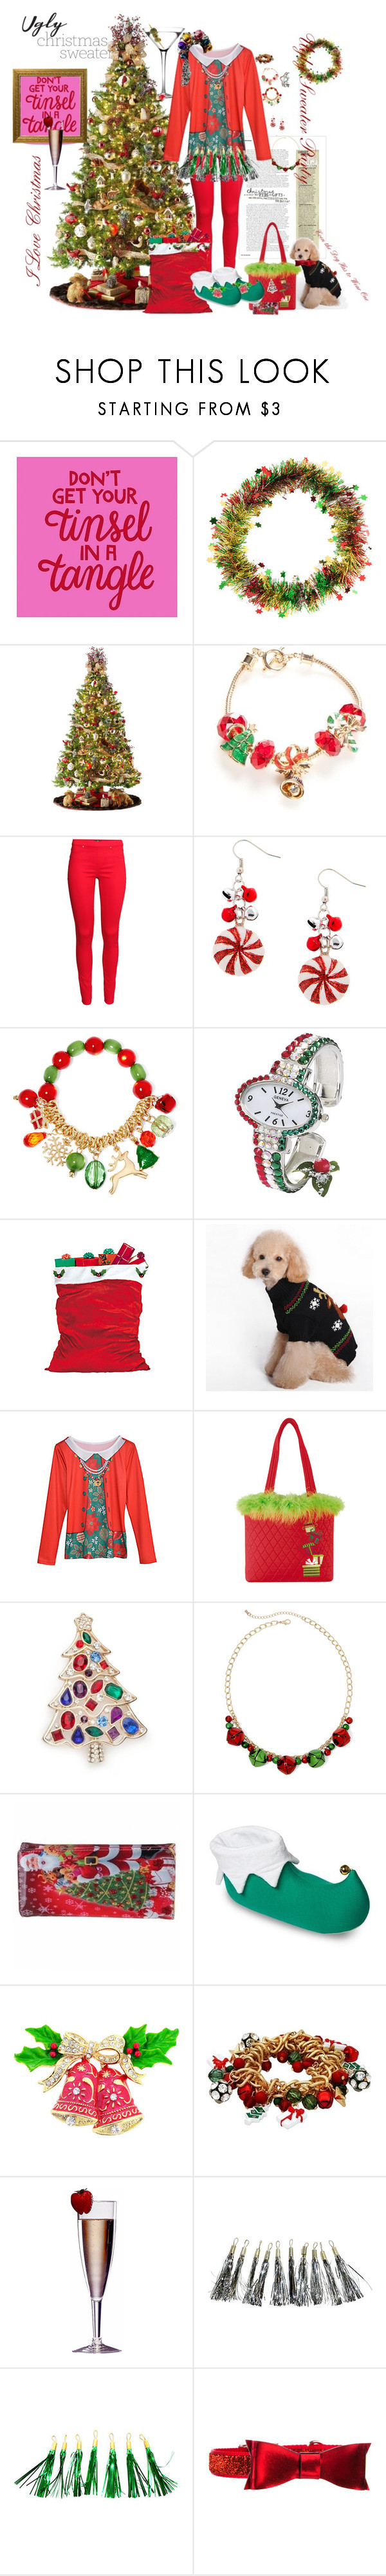 """""""I Love An Ugly Sweater Party"""" by sdpoodlemom ❤ liked on Polyvore featuring claire's, General Foam, Napier, H&M, Mixit, C & F and Kim Rogers"""